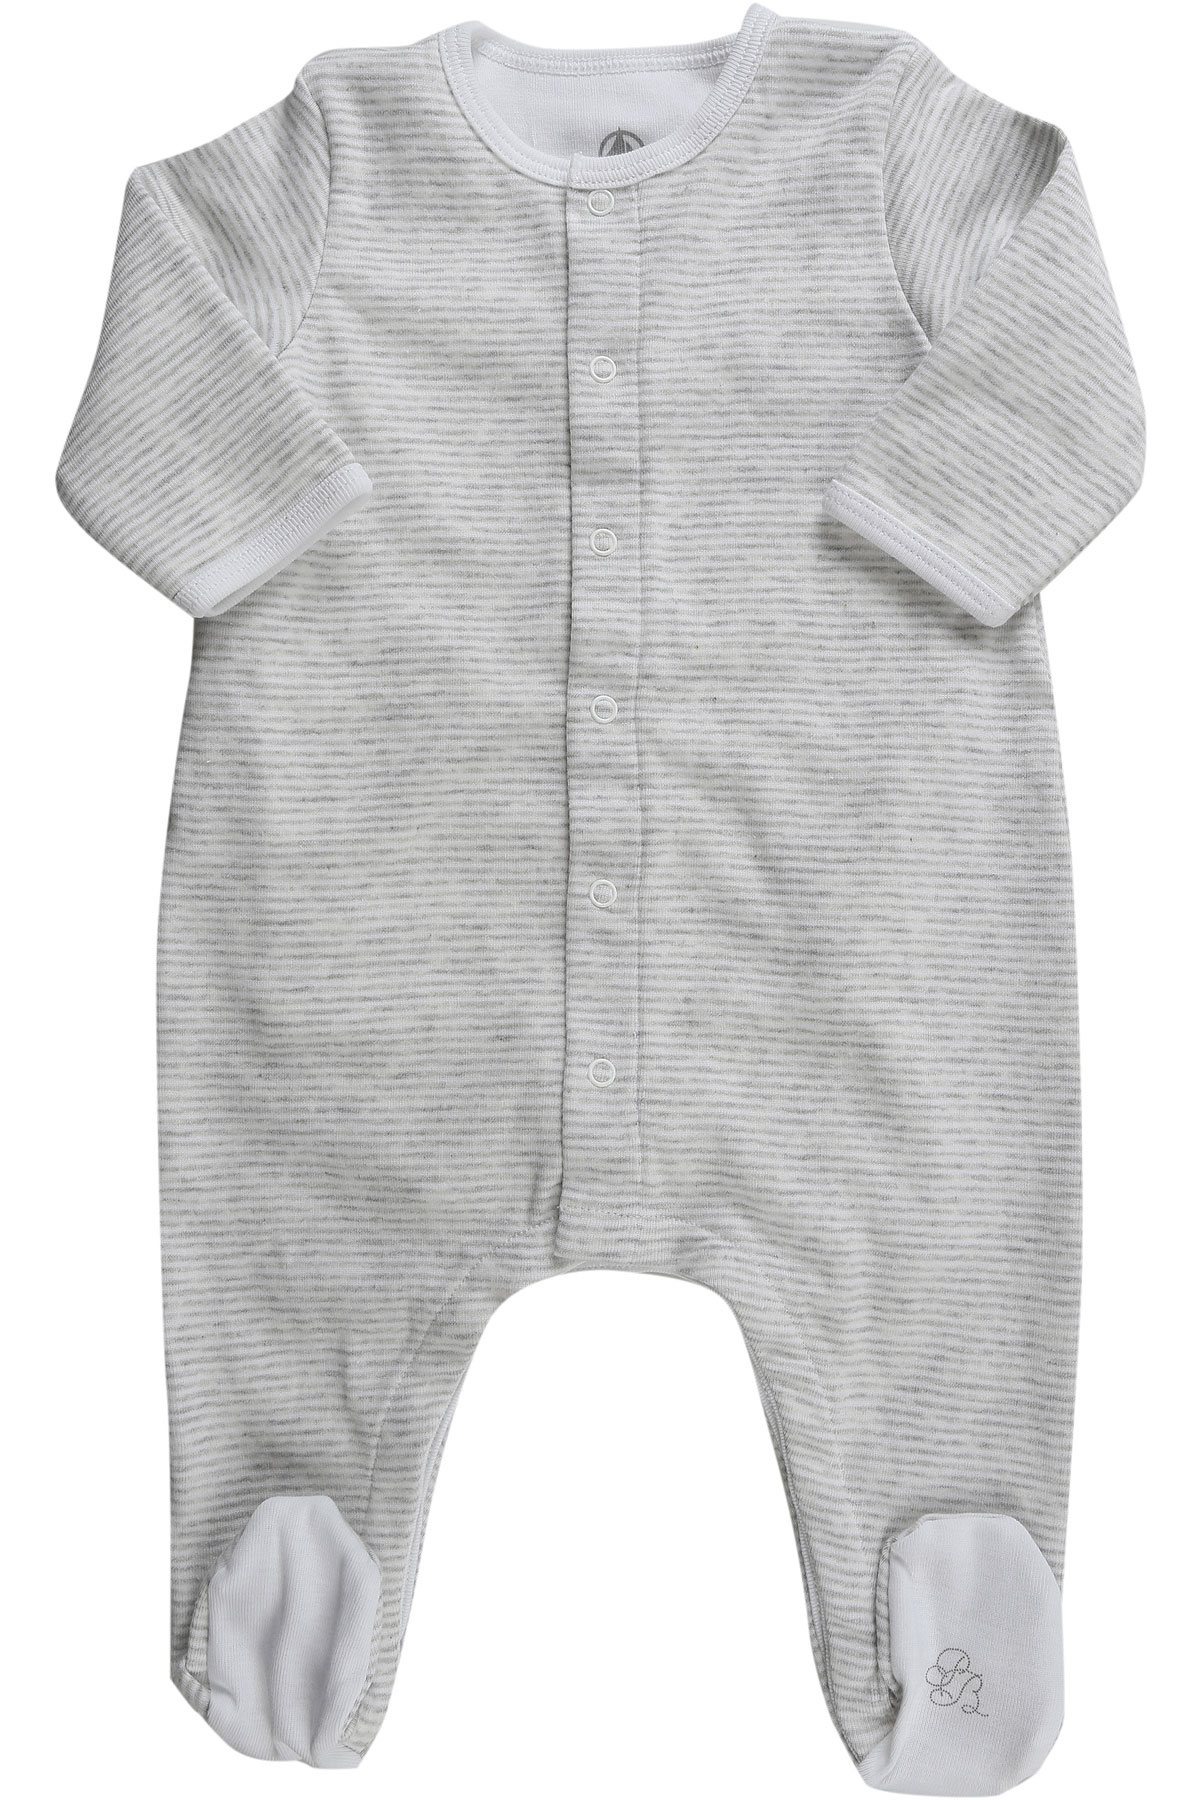 Image of Petit Bateau Baby Bodysuits & Onesies for Boys On Sale, White, Cotton, 2017, 1M 3M 6M